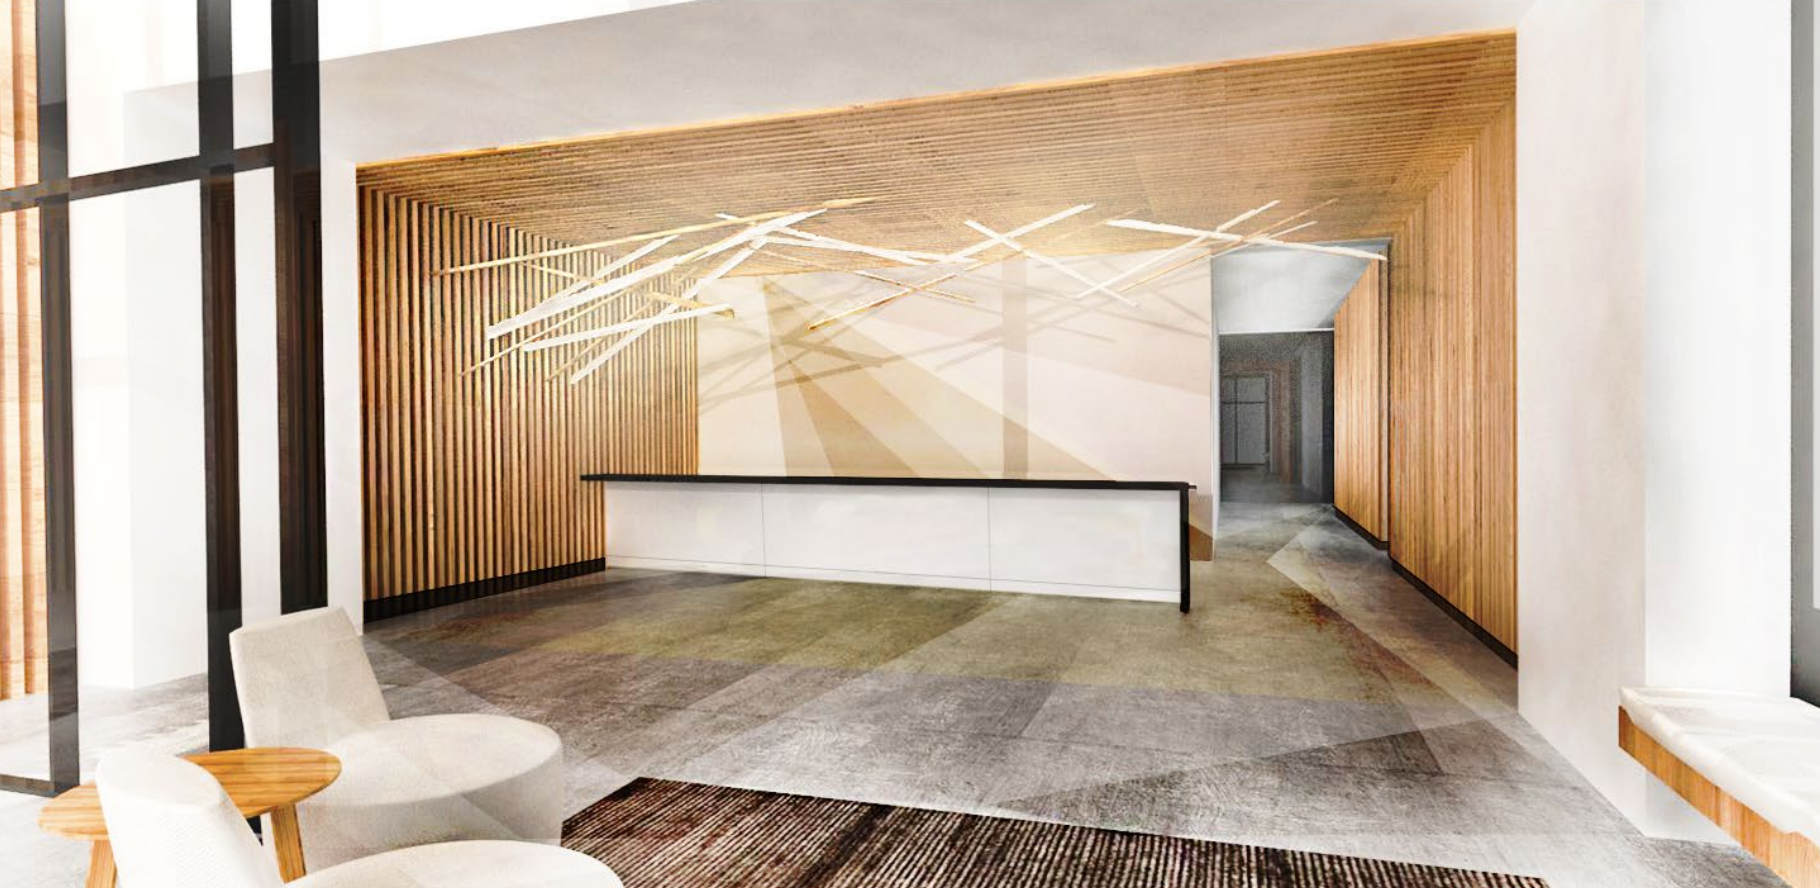 Lobby of 38 Sixth Avenue. rendering by SHoP Architects